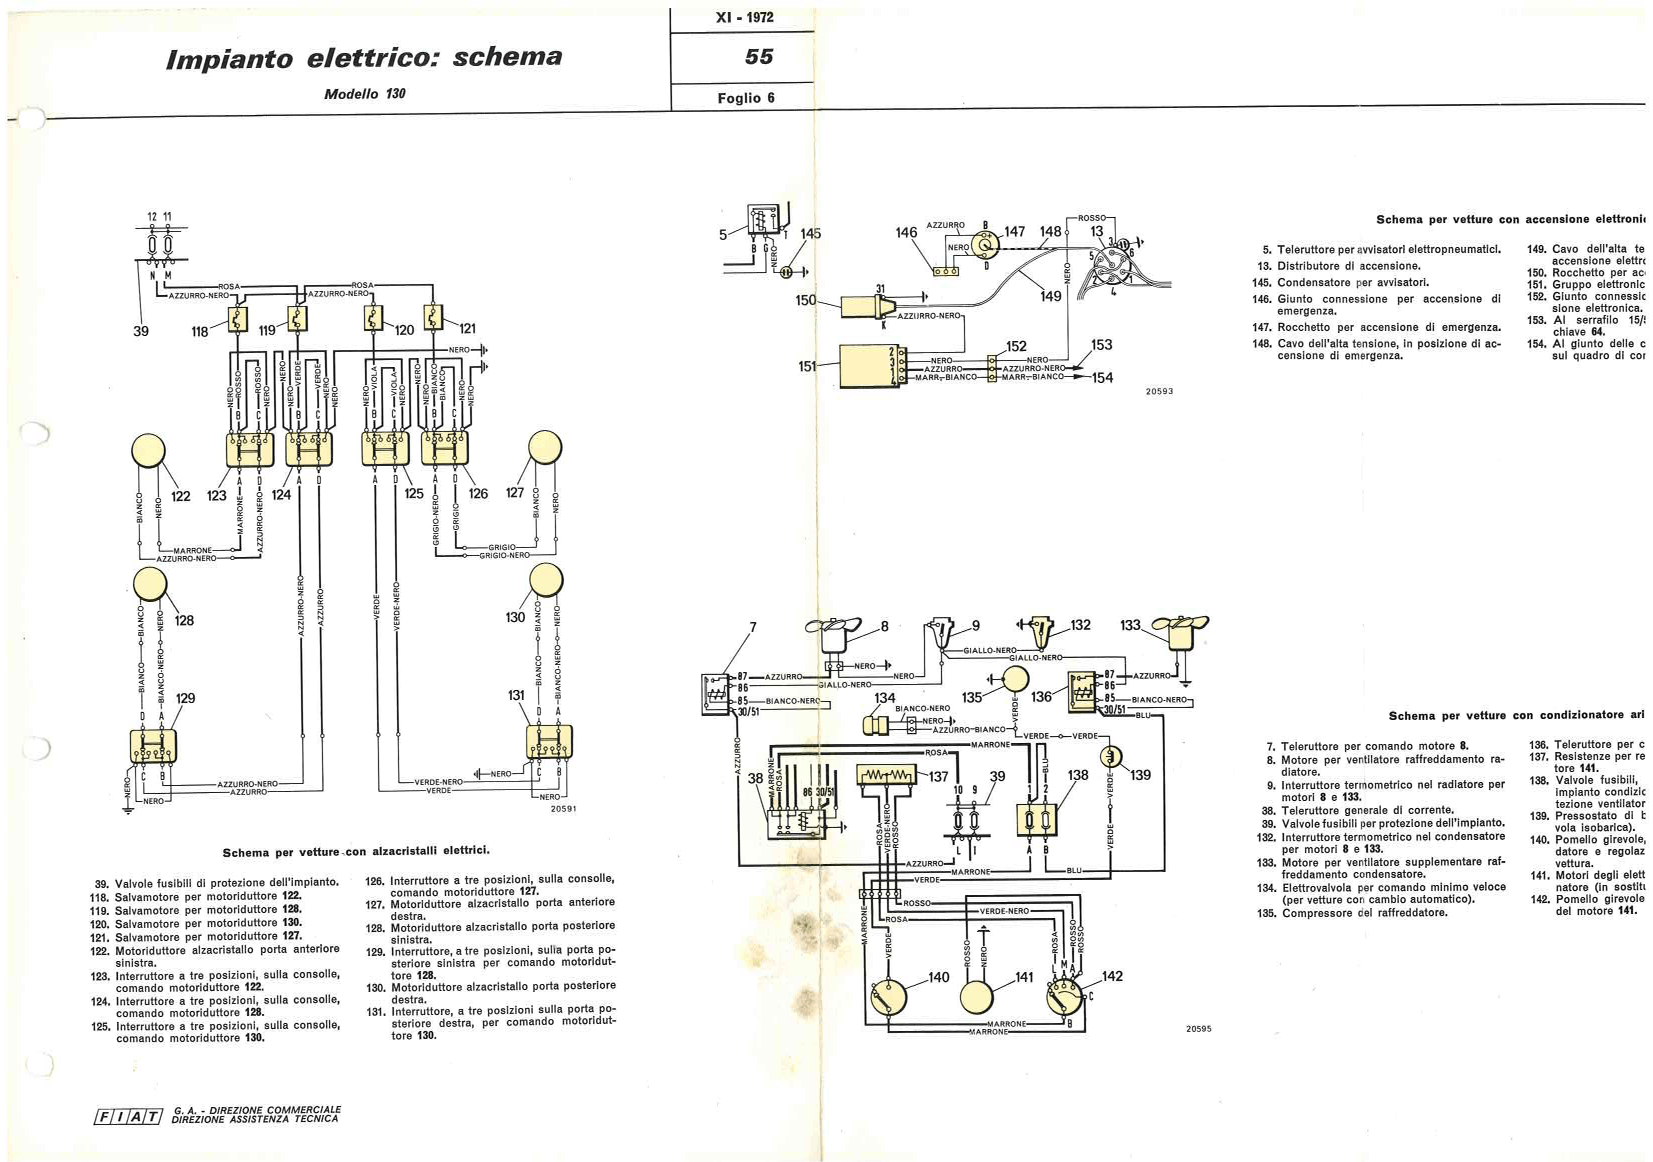 Wiring Diagram Of The Electrical System